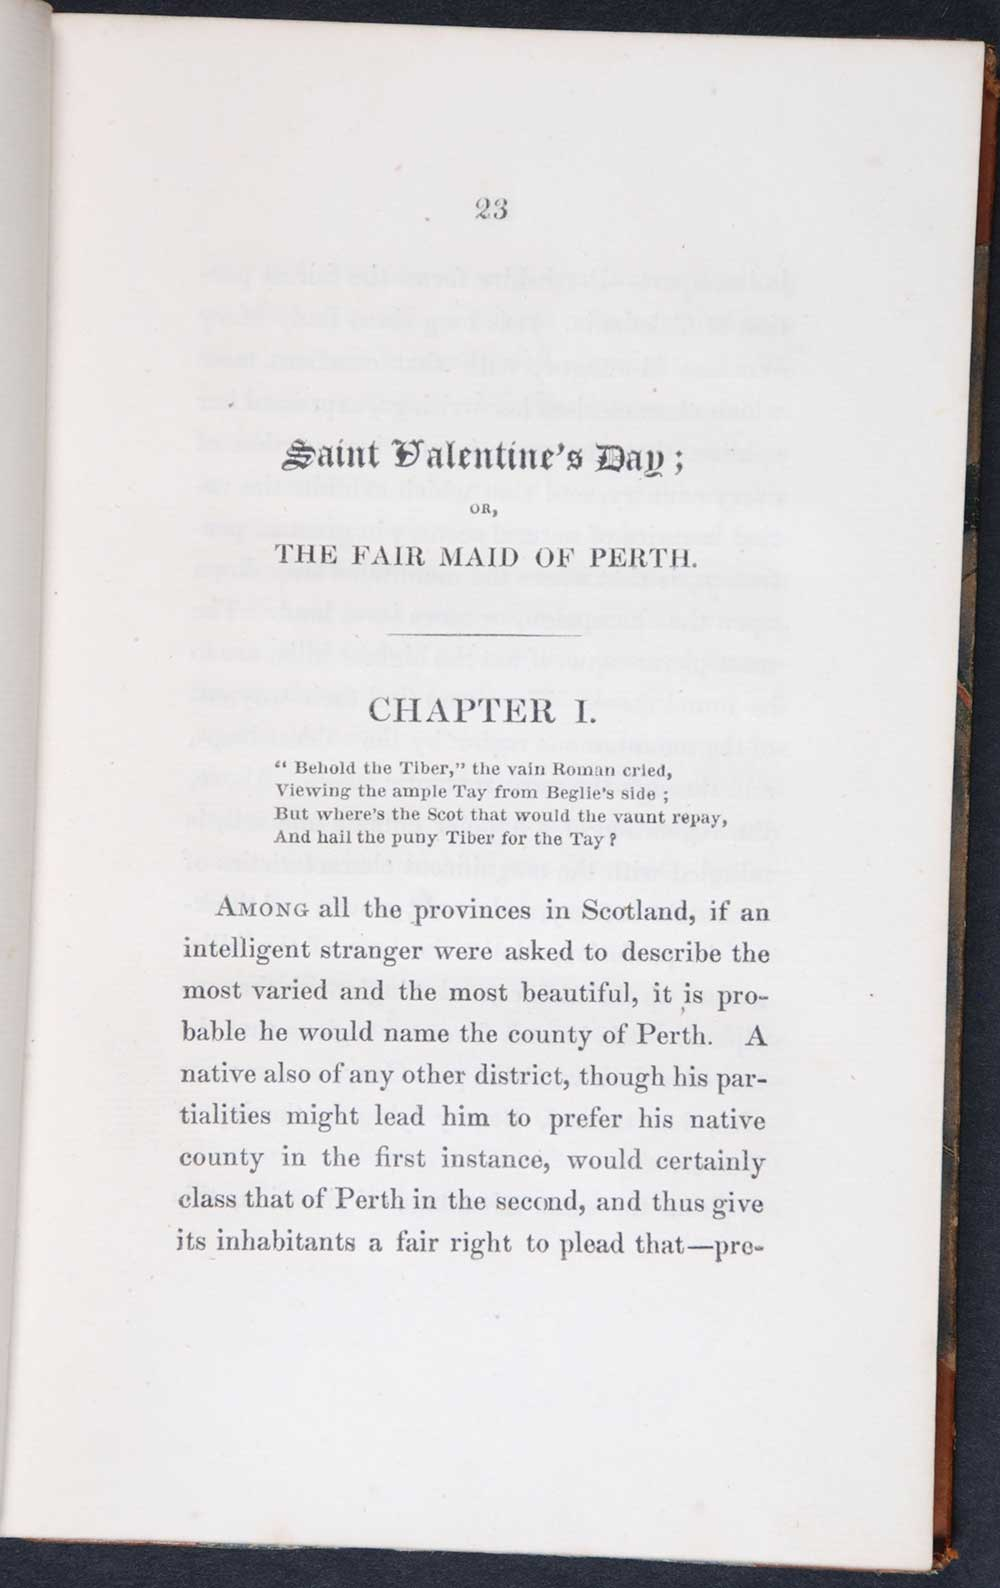 [Sir Walter Scott]. <em>Chronicles of the Canongate: second series.</em> [1st edition]. Edinburgh: Printed for Cadell and Co., Edinburgh; and Simpkin and Marshall, London, 1828. Two volumes; Vol. 1 displayed.